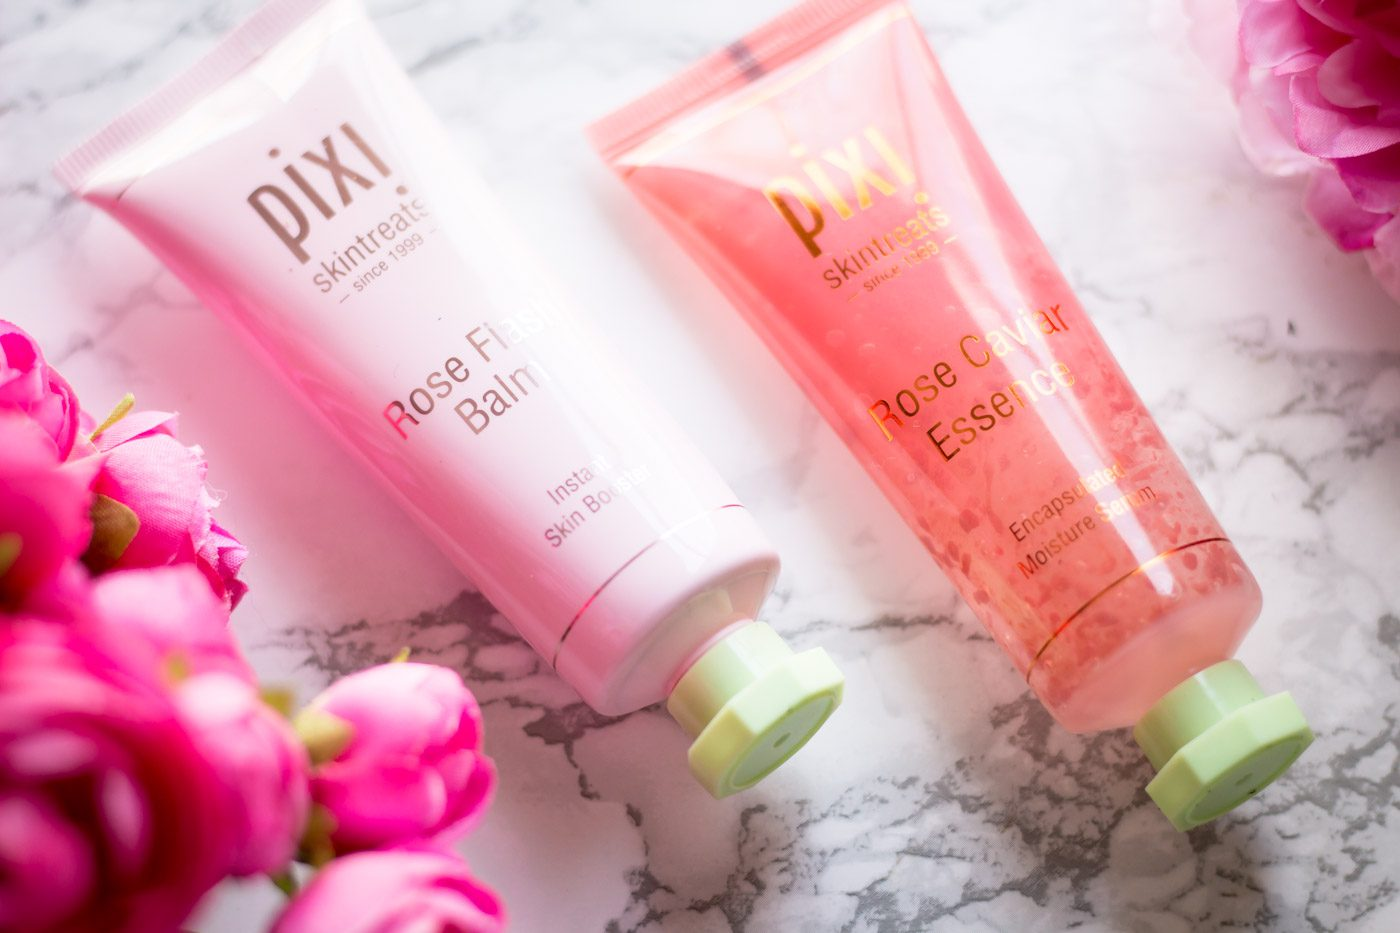 Rose_Flash_Balm_Pixi_By_Petra_Cosmetics (1 of 2)